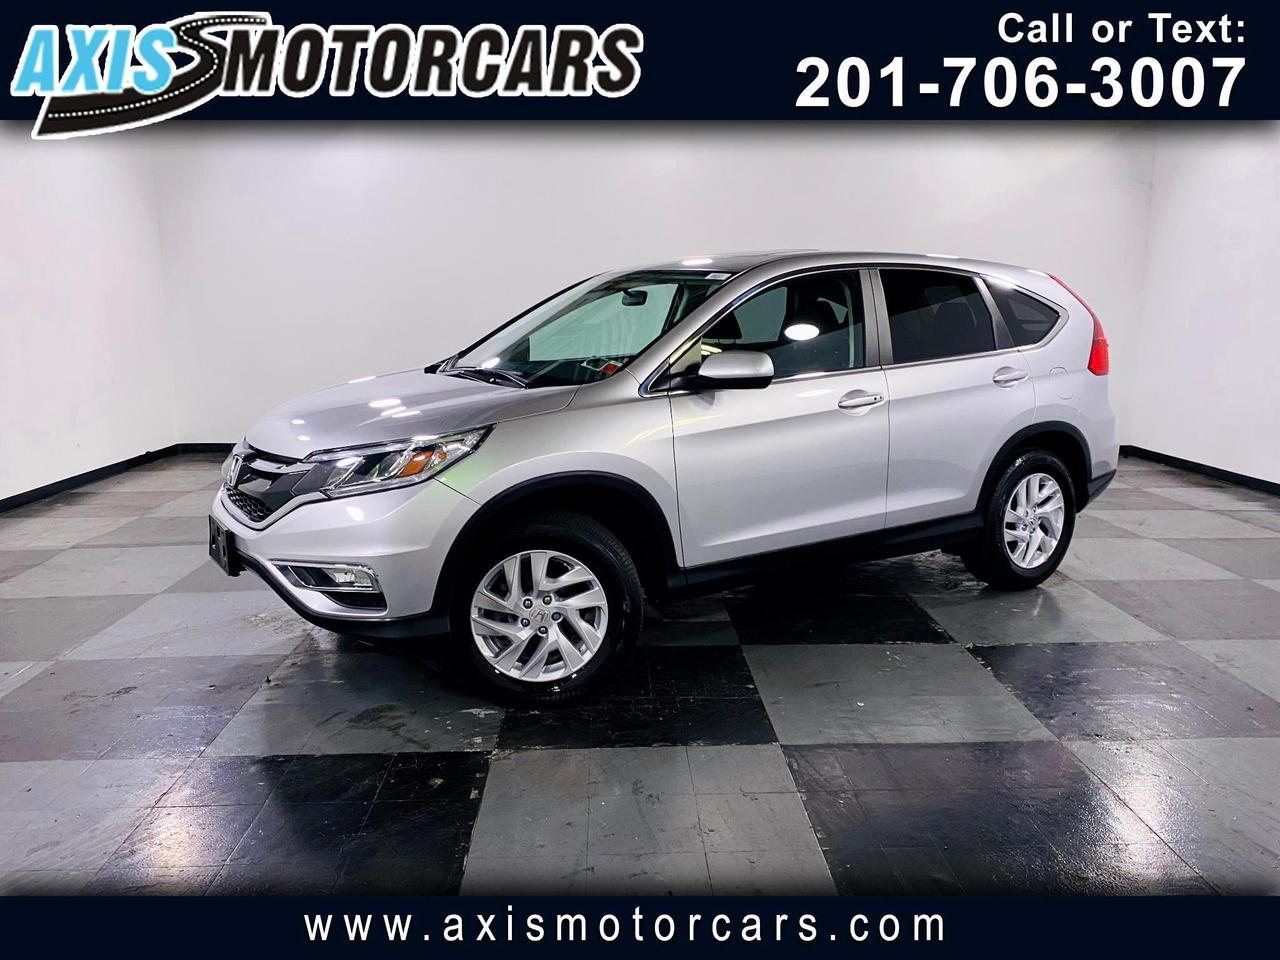 2016 Honda CR-V AWD 5dr EX w/Backup Camera Sun Roof Jersey City NJ